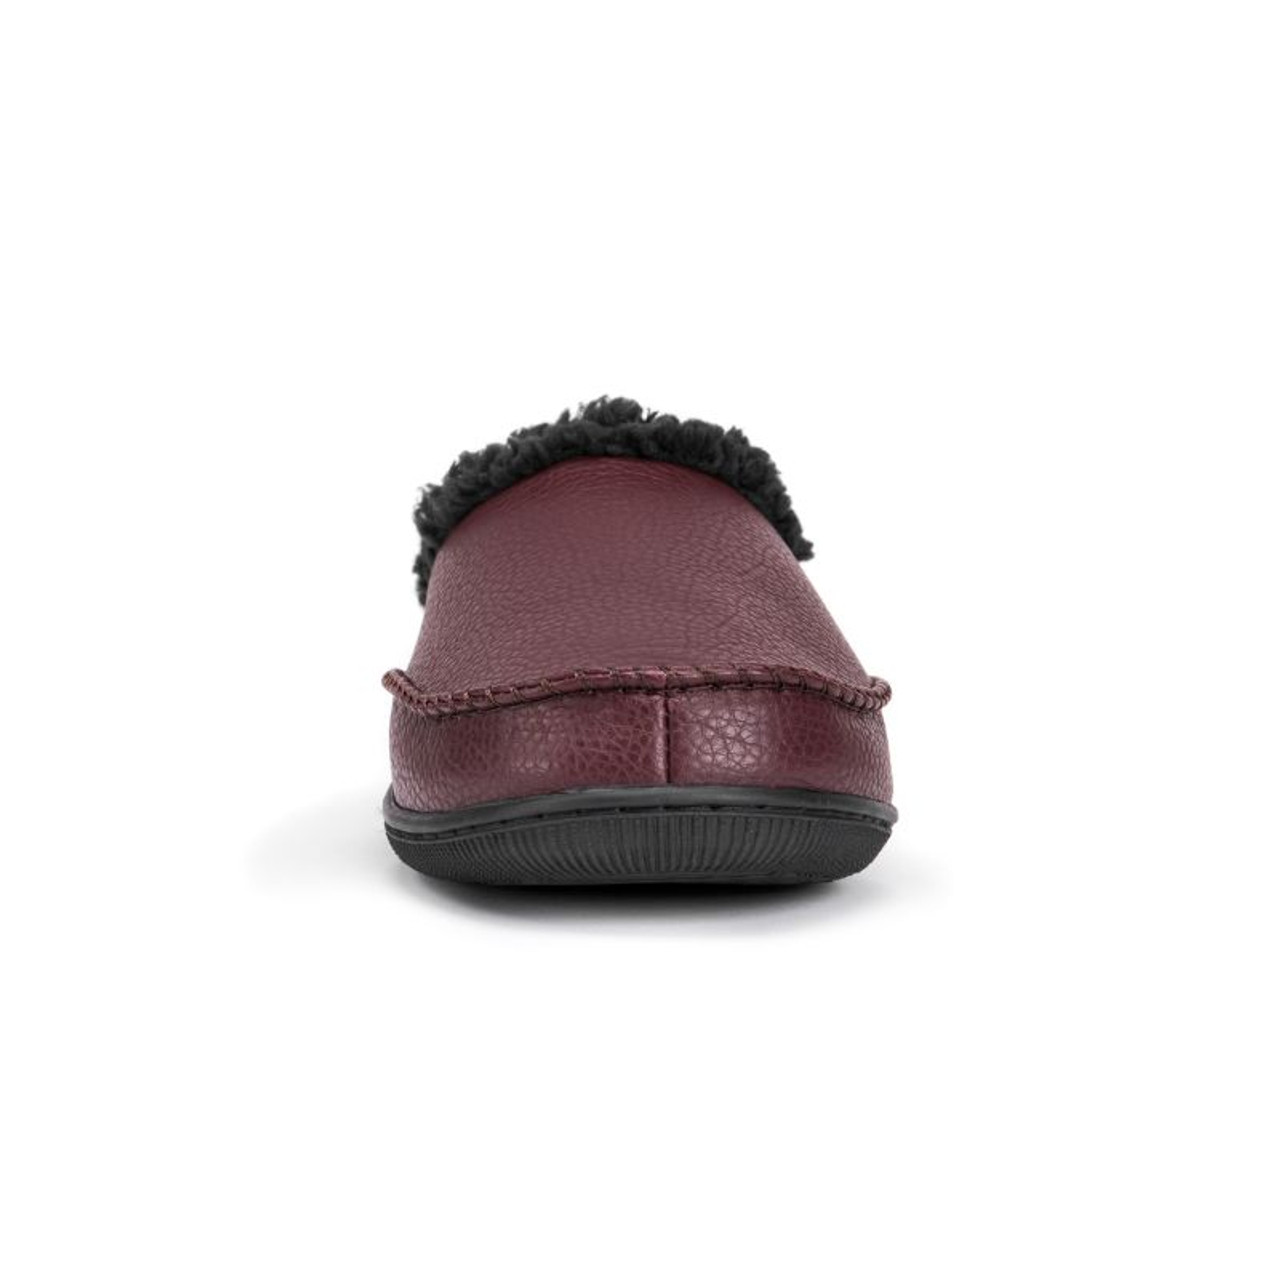 Muk Luks Men's Faux Leather Clog Slippers